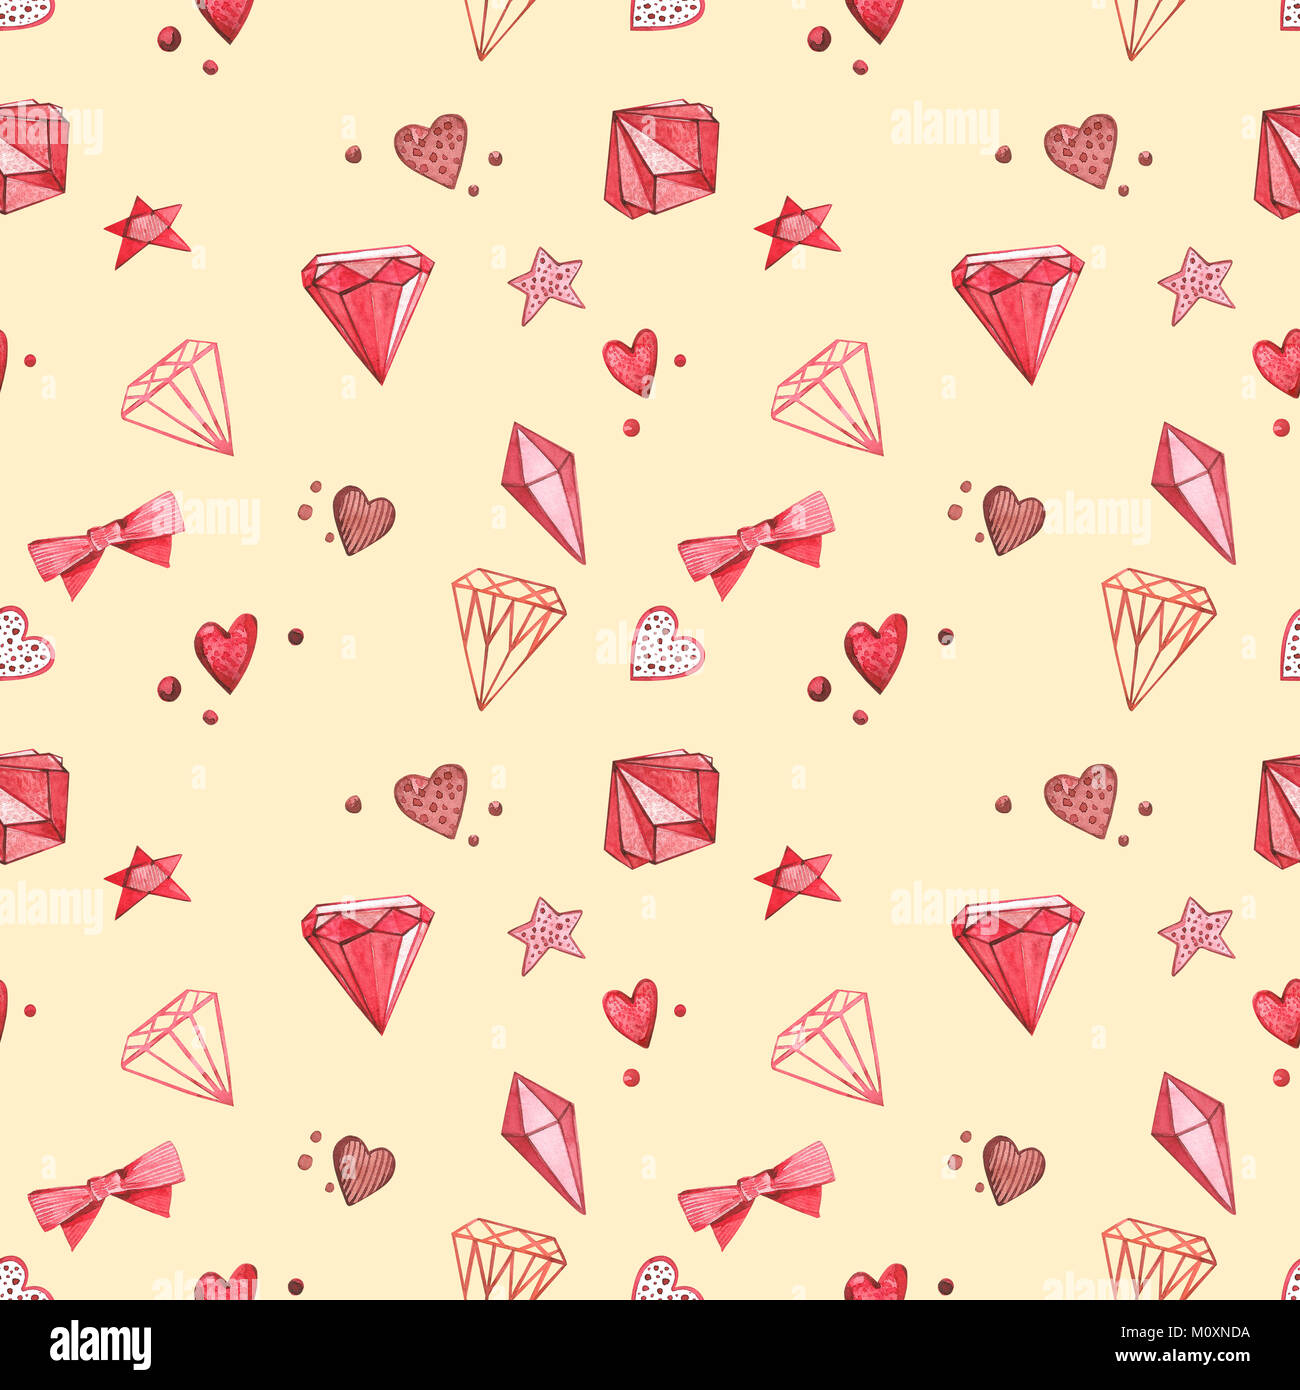 Seamless Patterns Pink Watercolor Set Of Elements For Valentine S